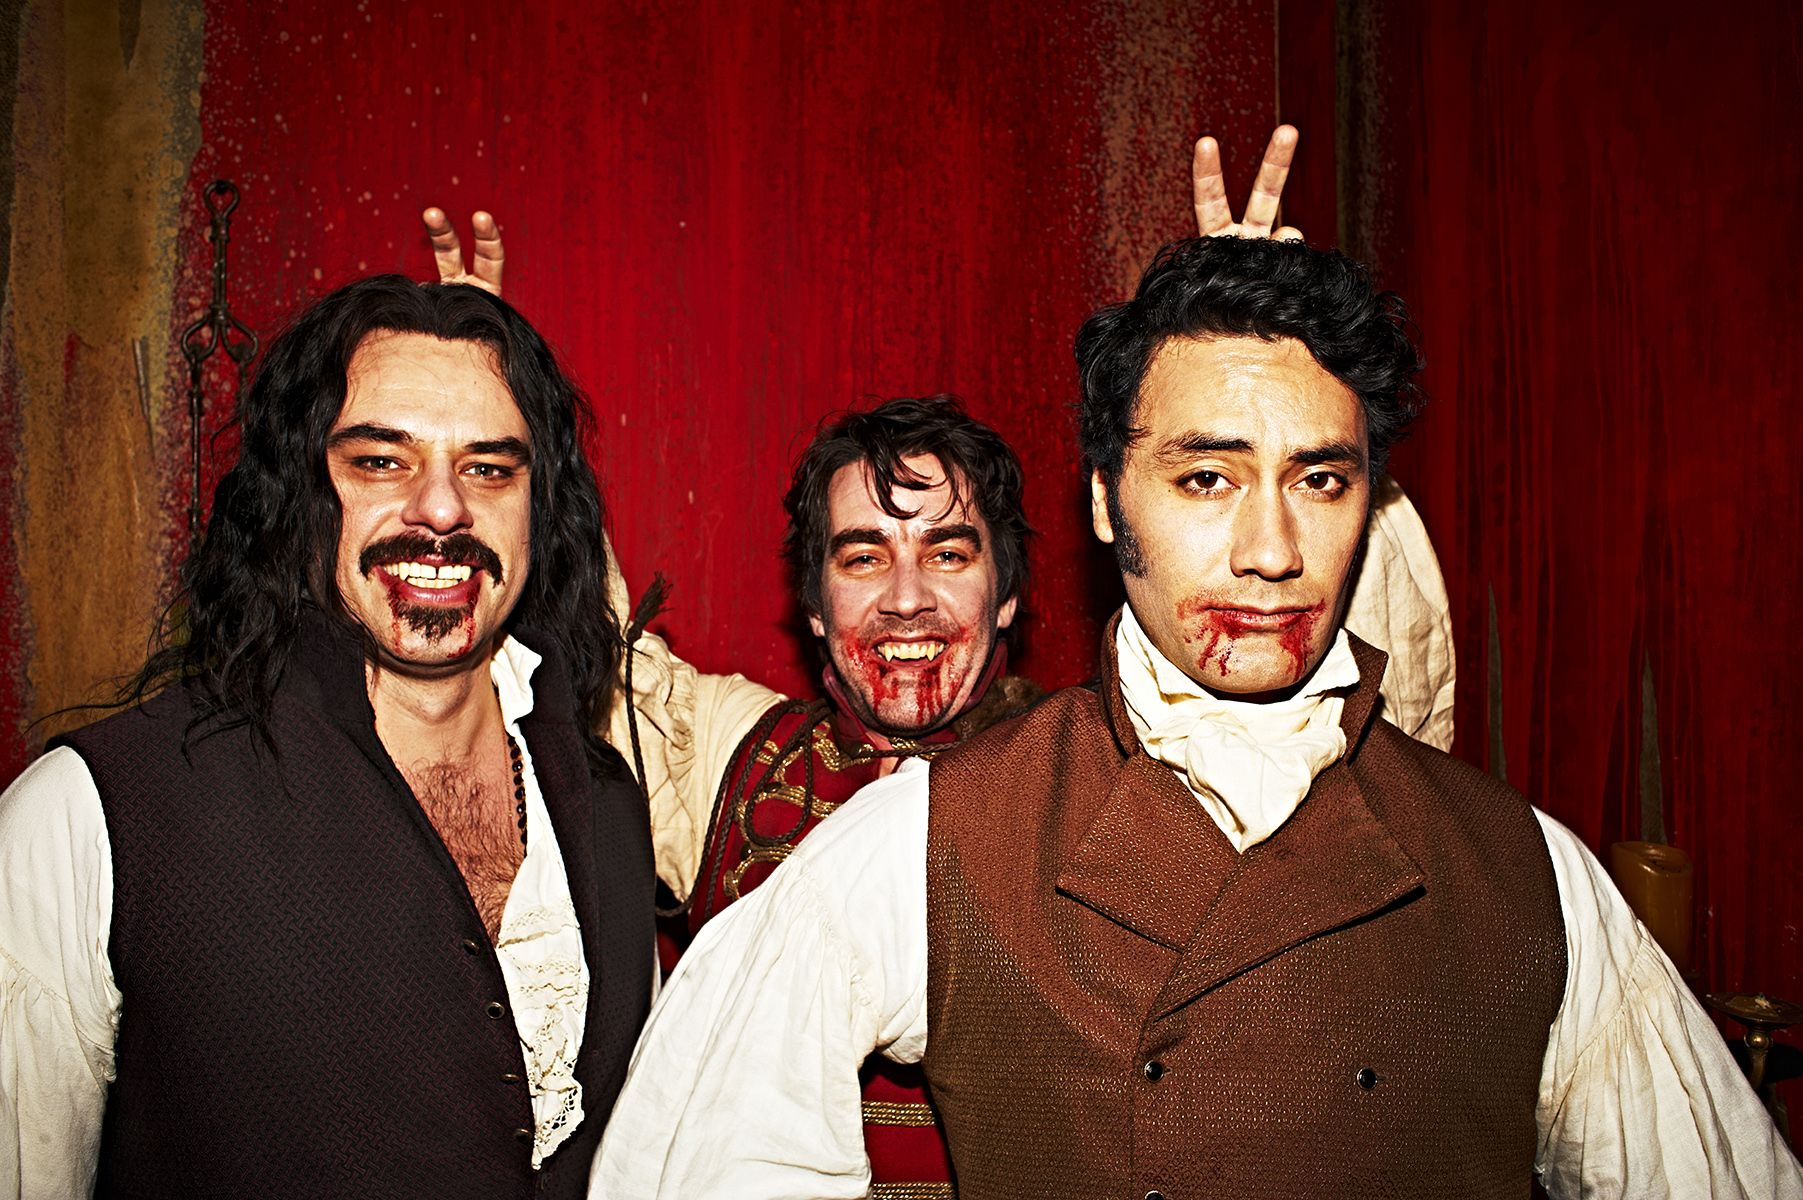 What We Do in the Shadows: See the first three minutes of short that inspired the film | EW.com